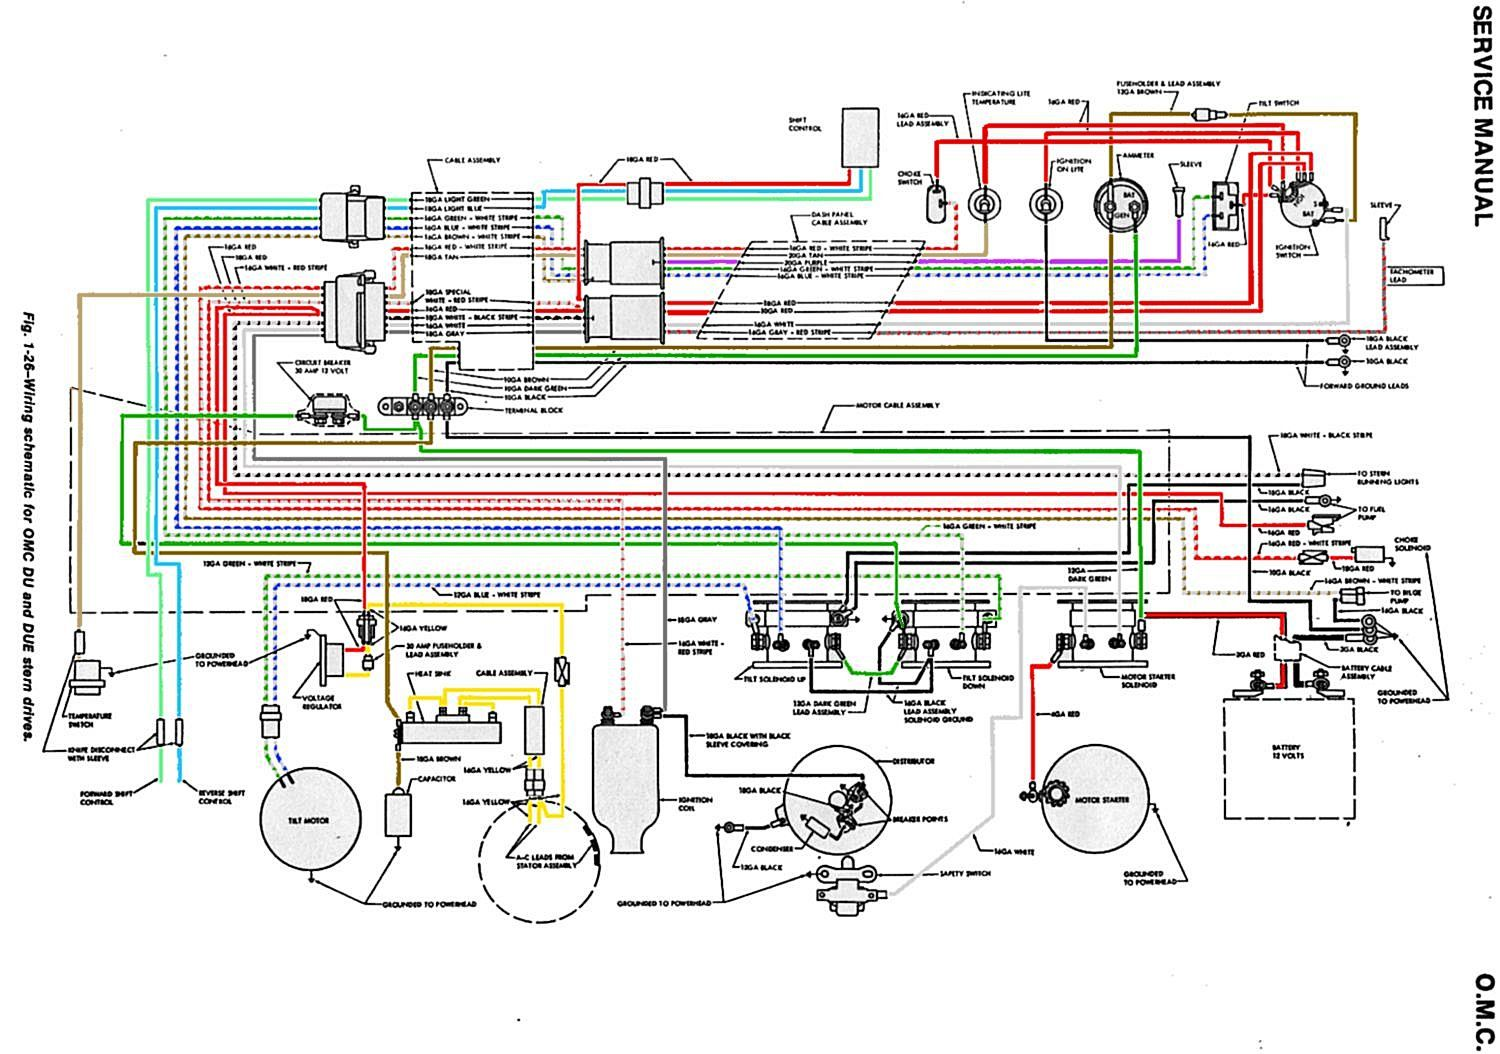 Incredible Omc Boat Wiring Diagram Diagram Data Schema Wiring Cloud Geisbieswglorg